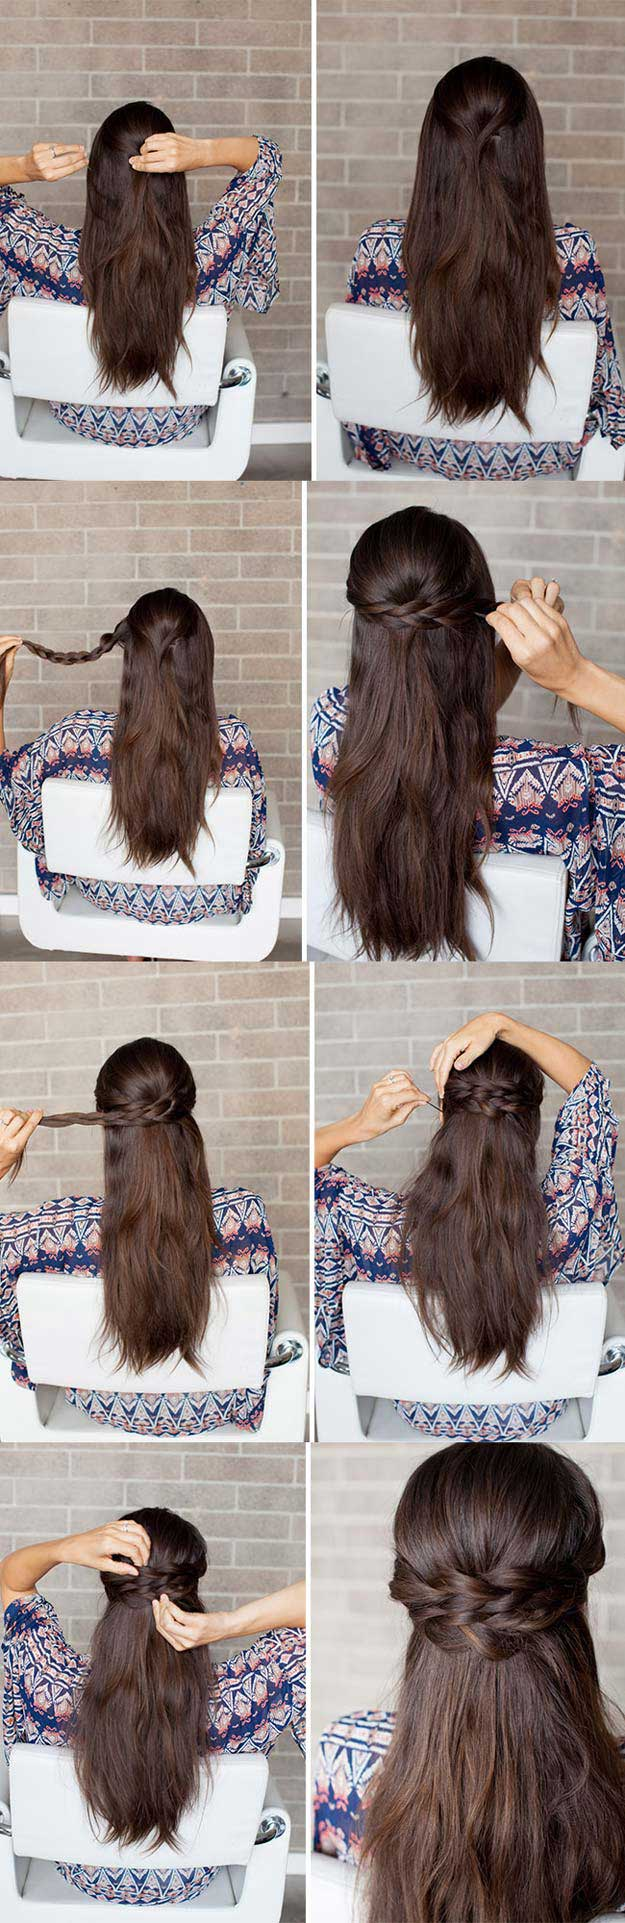 ِAwosome Half up-Half down Hairstyles And TUTORIAL for long hair 2